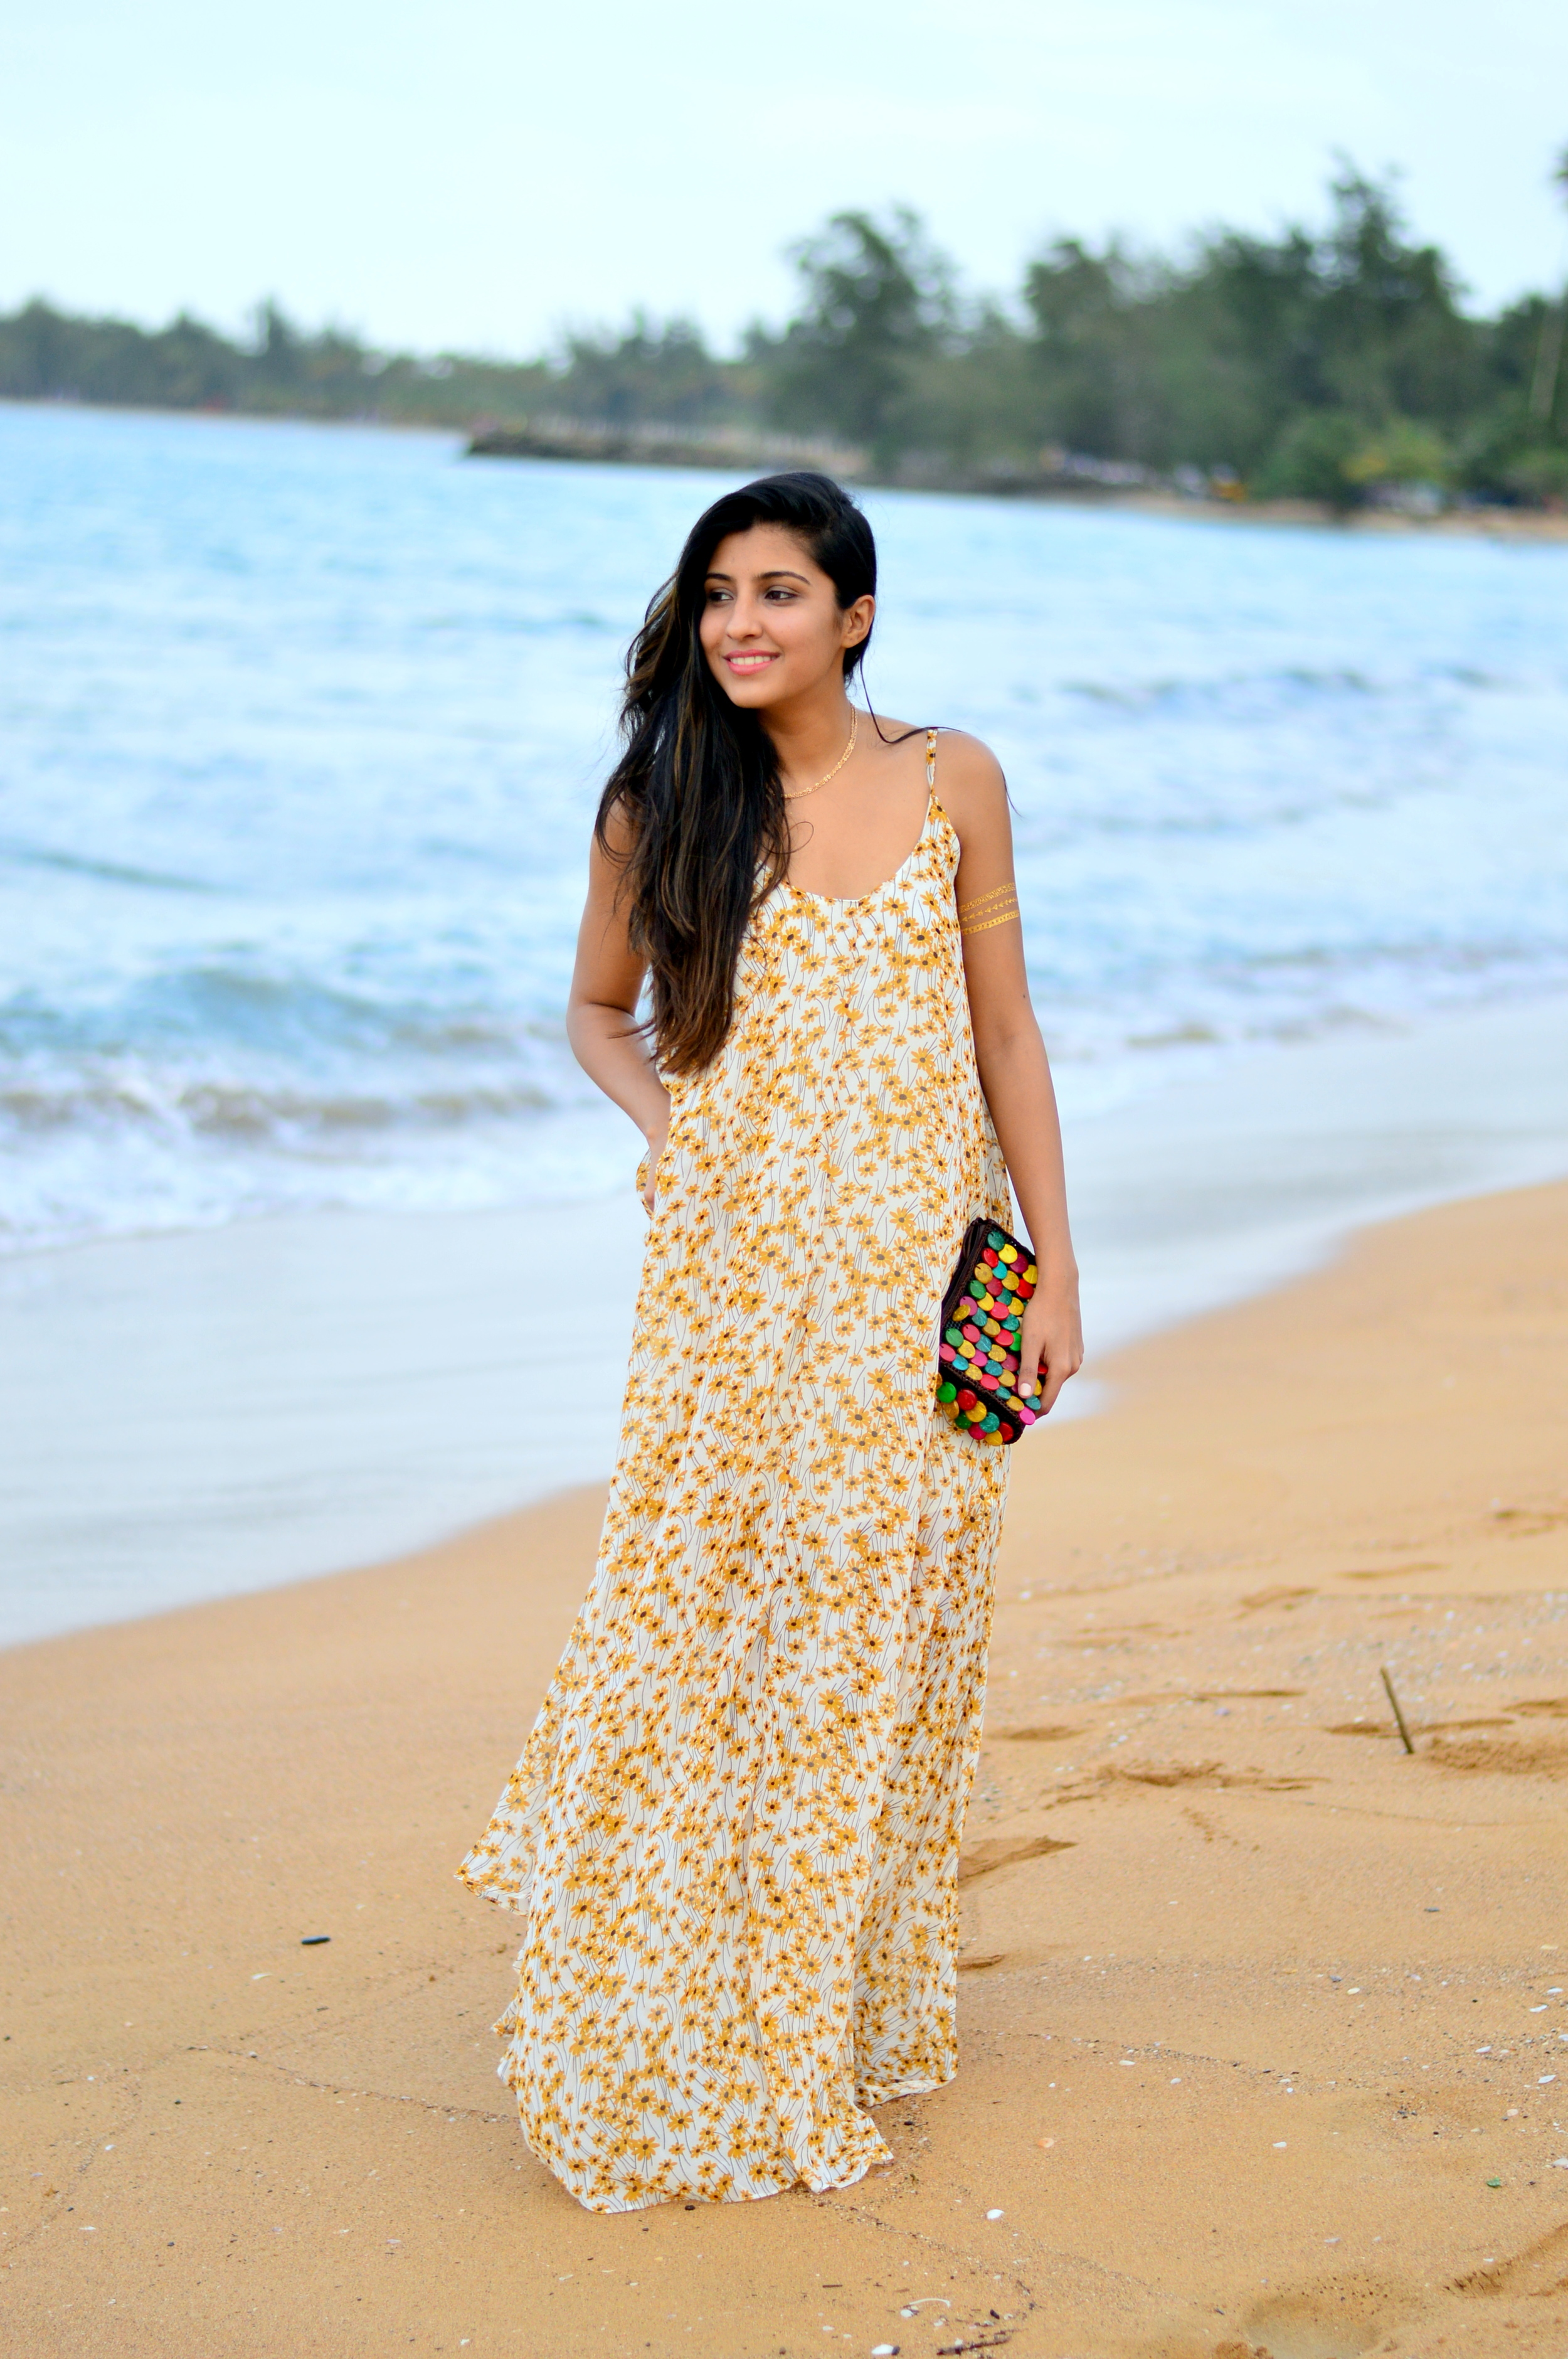 floral-maxi-dress-beach-vacation-style-blogger 2